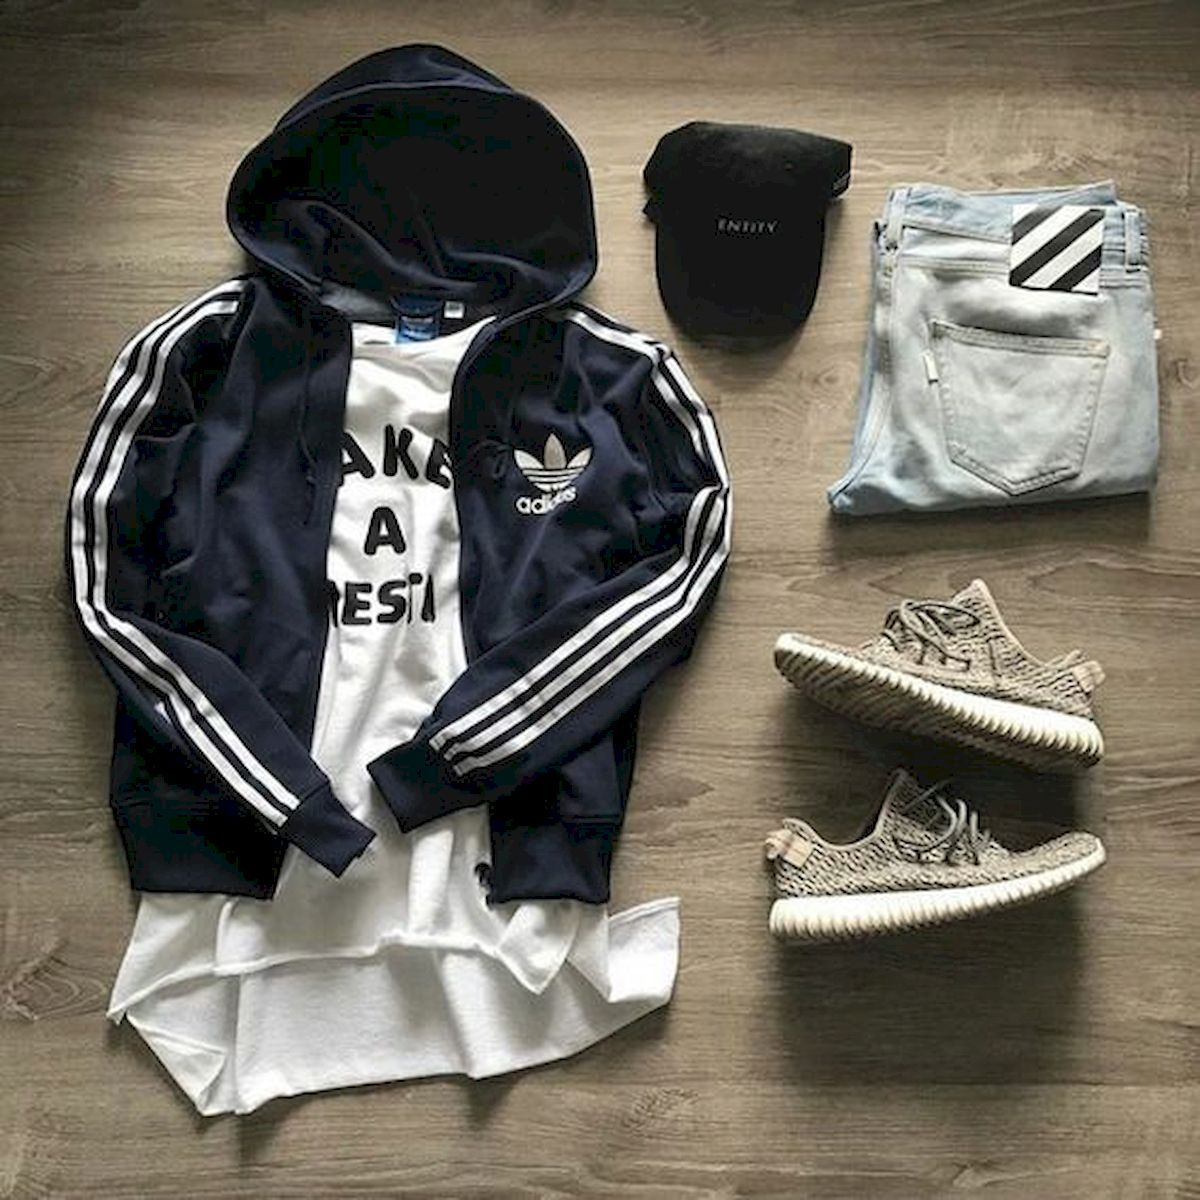 50 Awesome Streetwear Outfits Grids Ideas for Men #outfitgrid